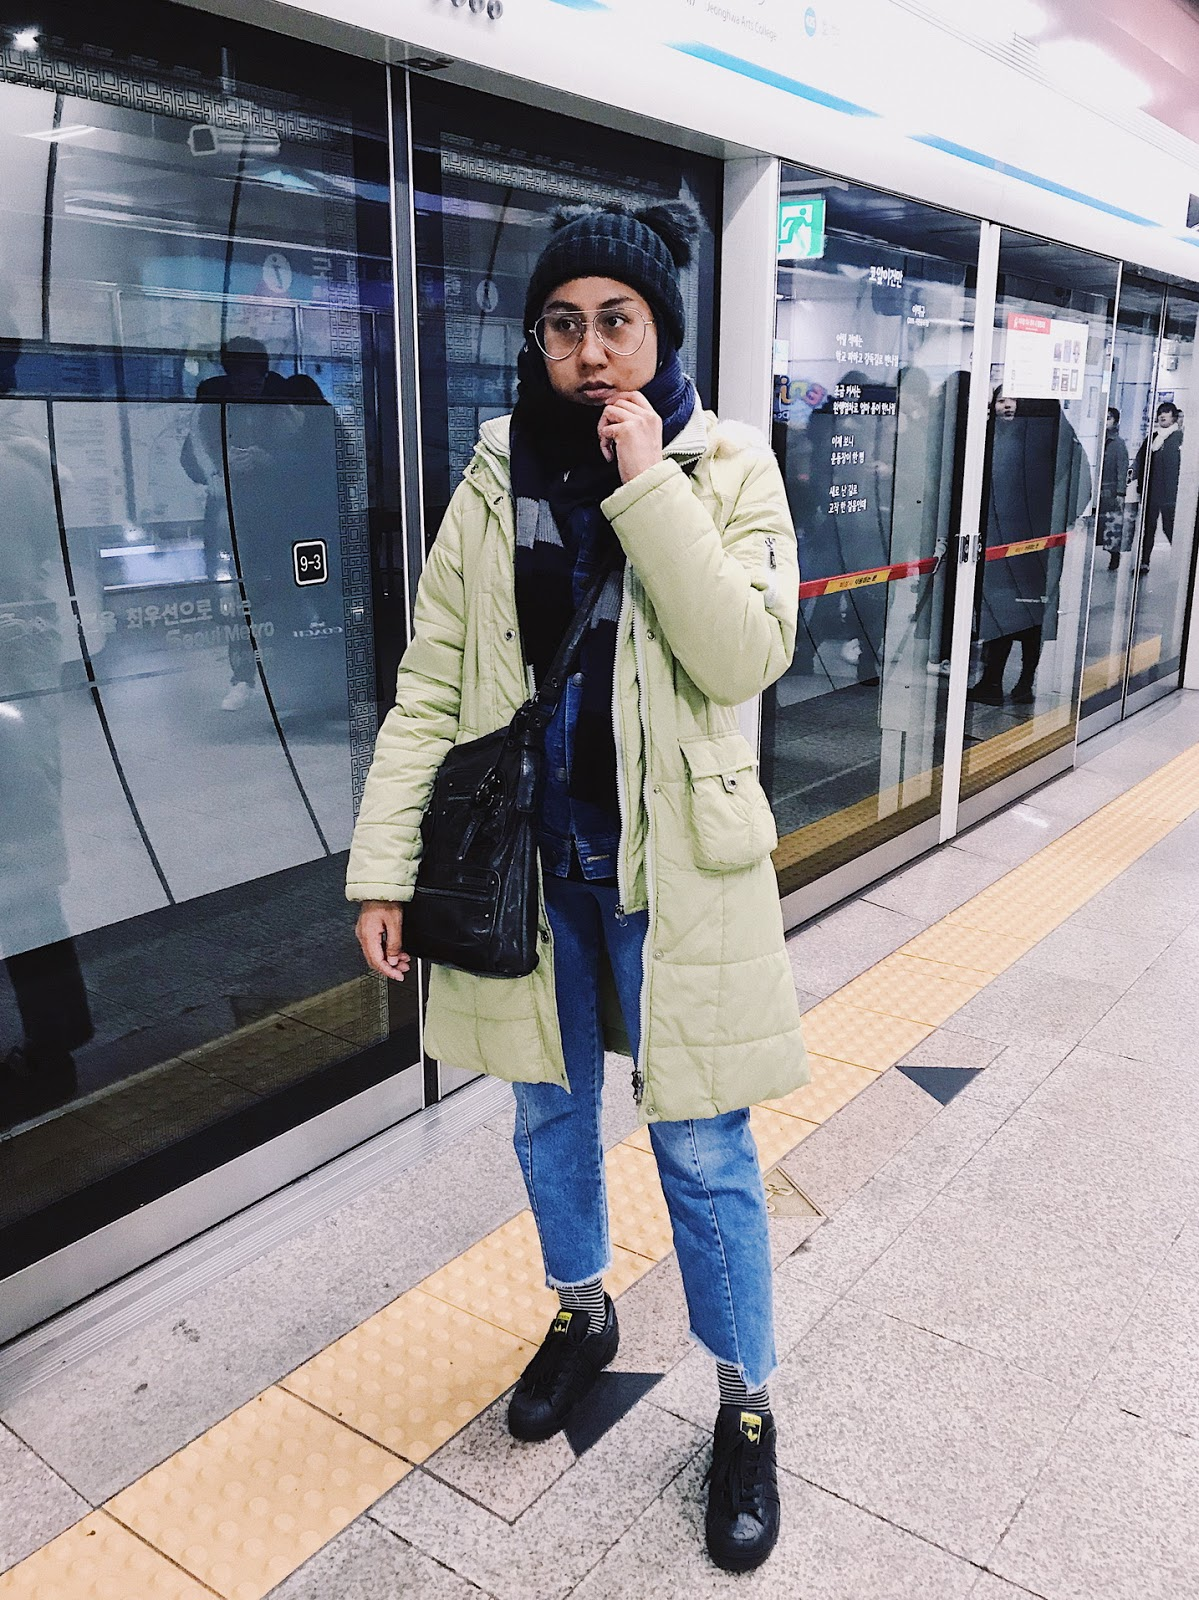 Instagram Outfit No Makeup All Bundled Up In Seoul Affordorable